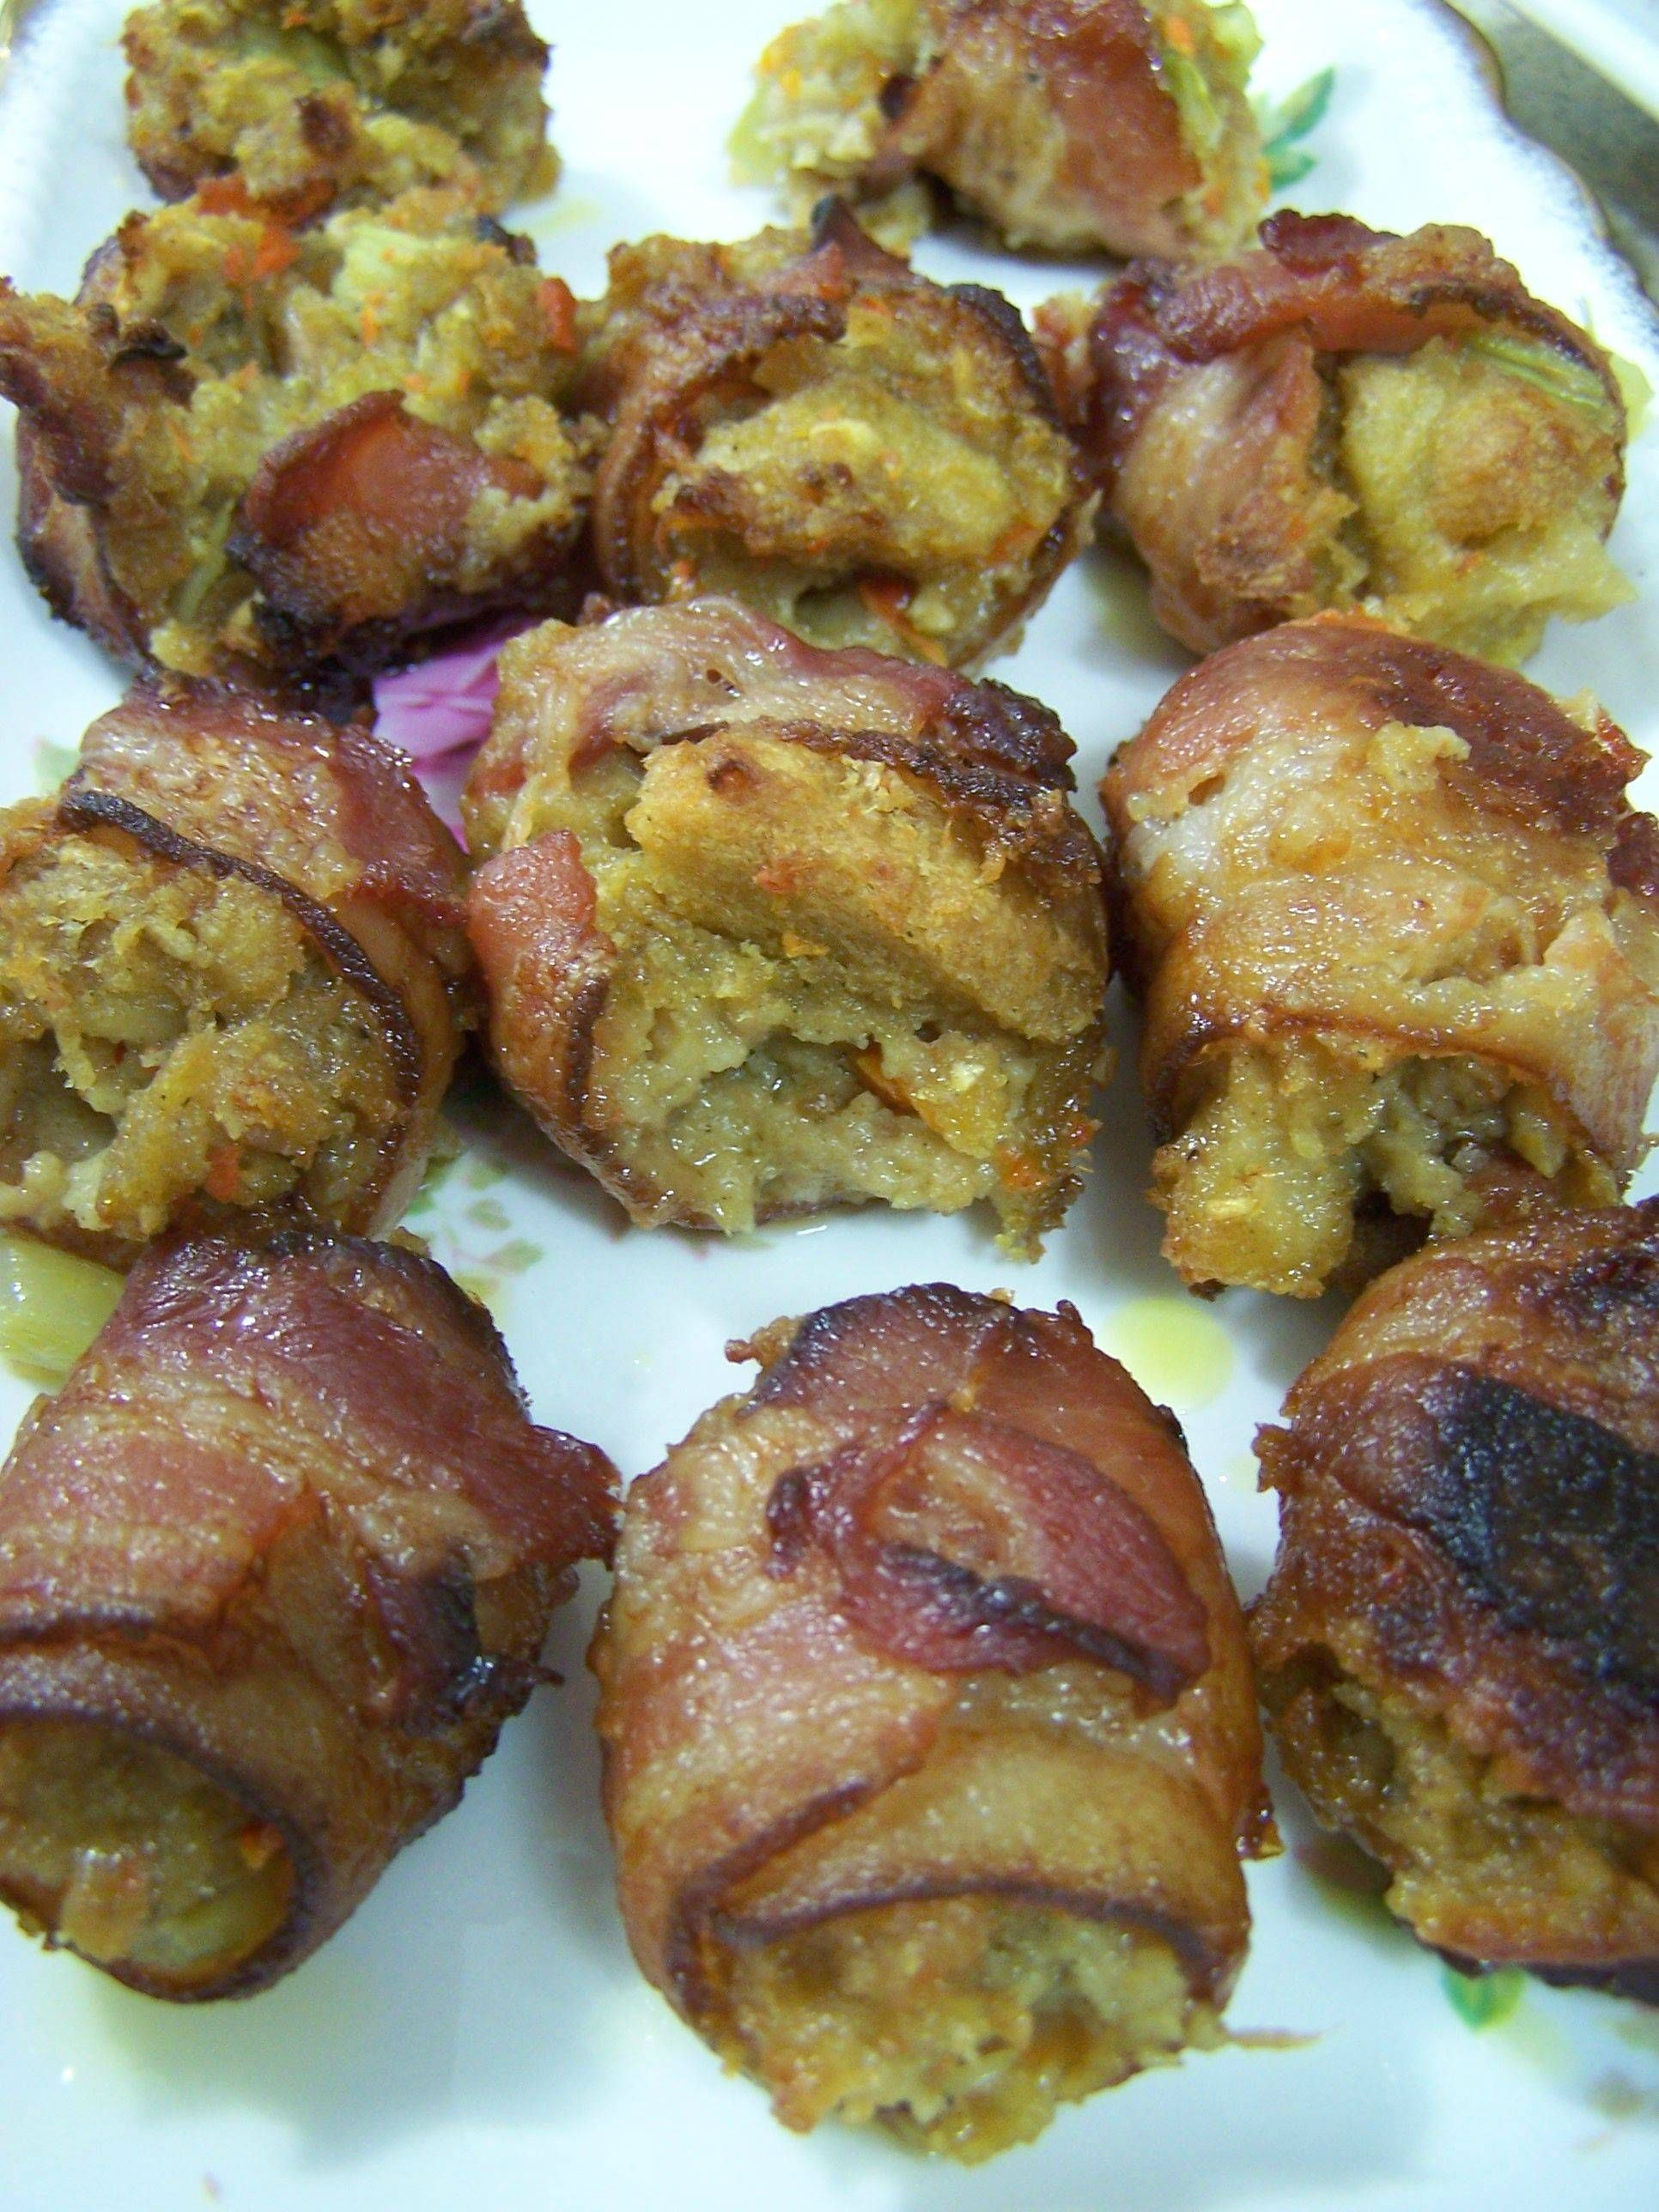 Baconwrapped Stuffing. NEED to do this with leftover